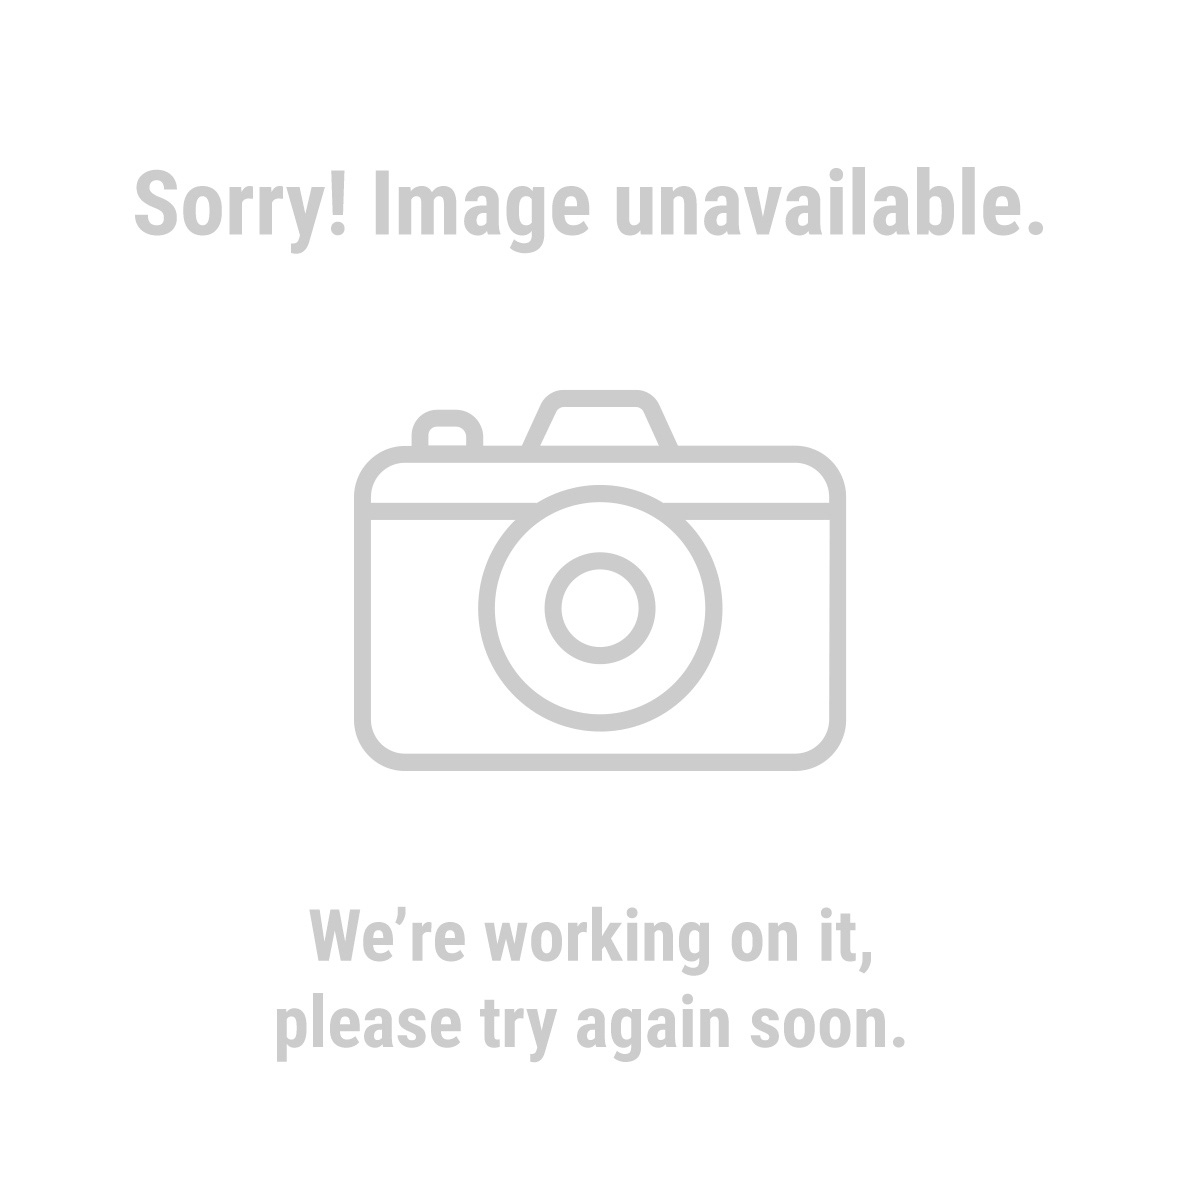 Haul-Master 61303 1000 lb. Capacity 1-1/2 in. x 10 ft. Ratcheting Tie Down Set of 4